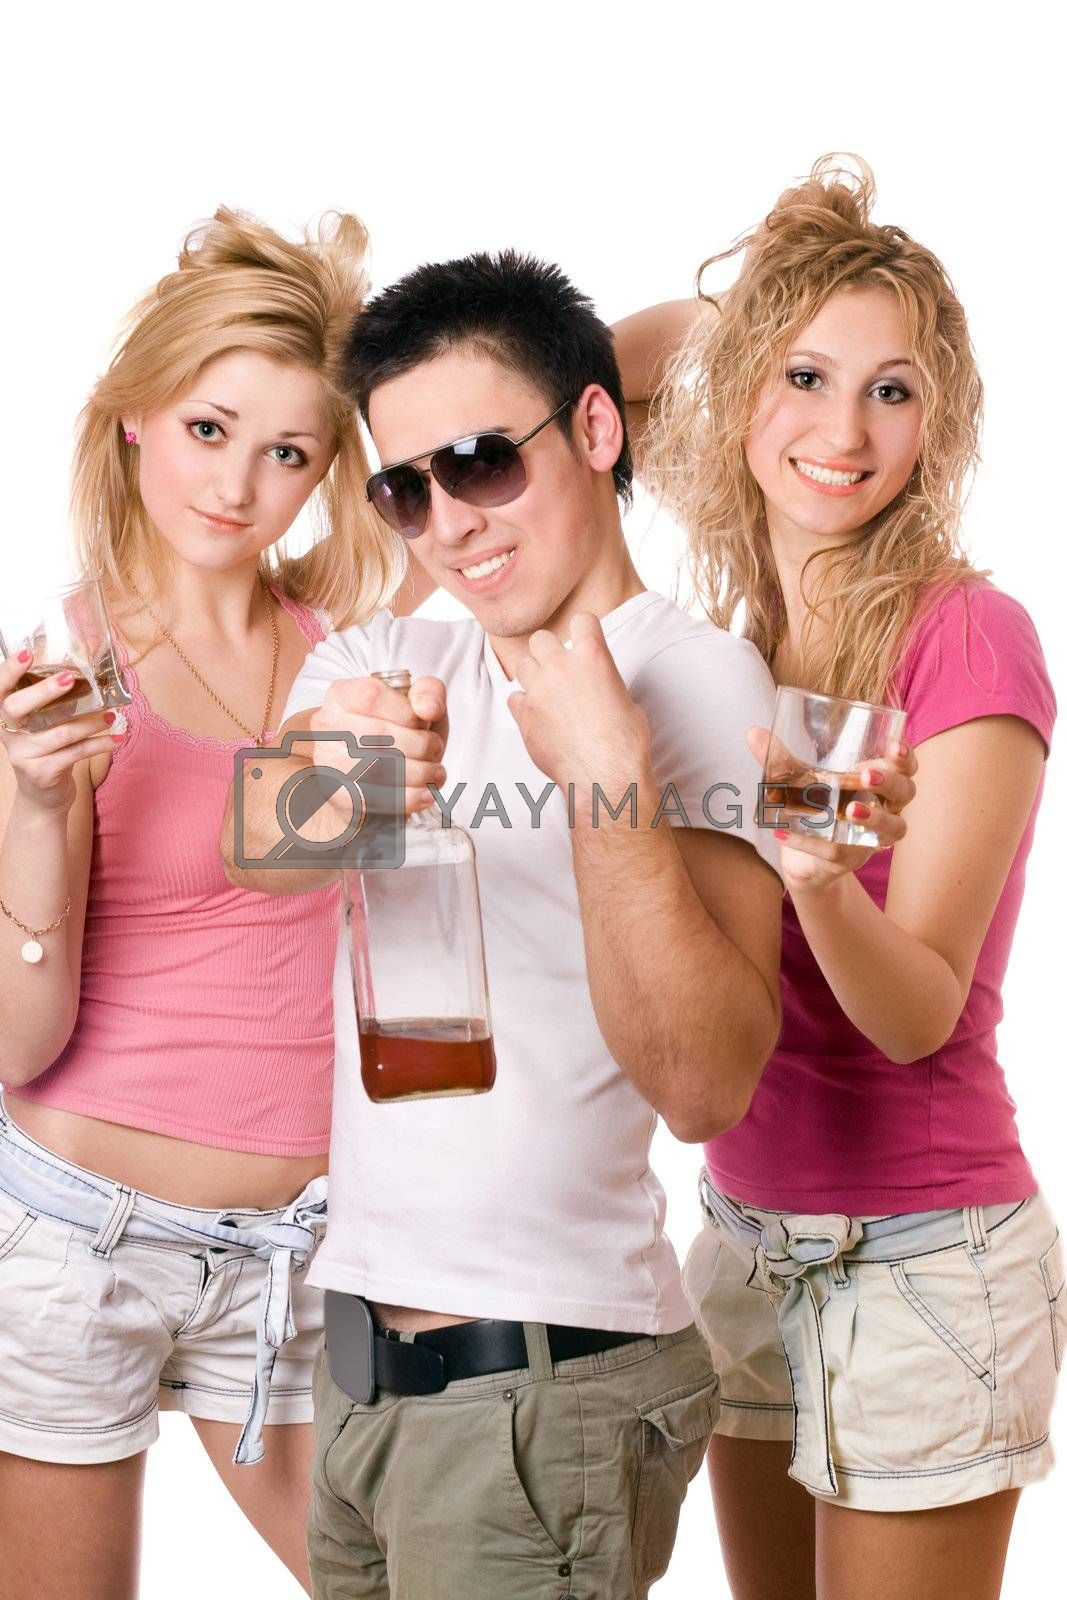 Cheerful young people with a bottle of whiskey